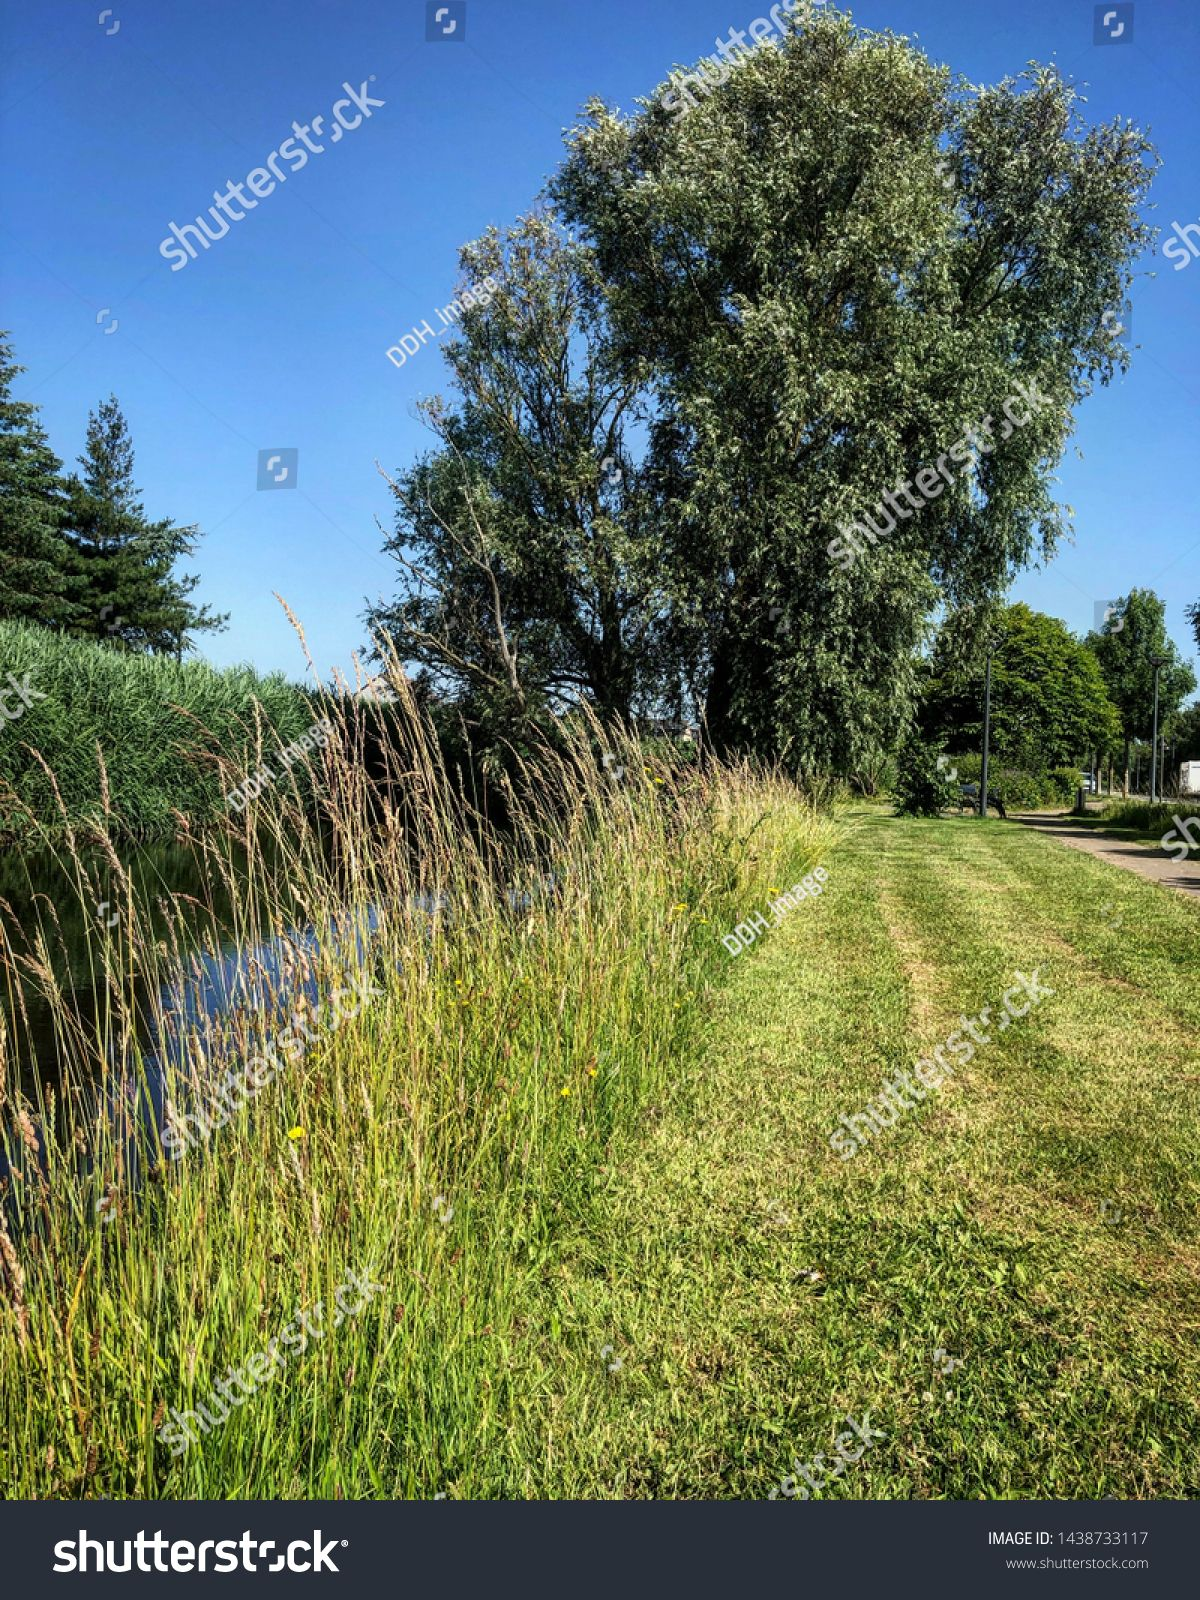 Outdoor Green Park Forest Next To River Rural Landscape Path With Trees And Grass And Modern Benche Sponsored Ad Forest Ri With Images Park Forest Green Park Outdoor